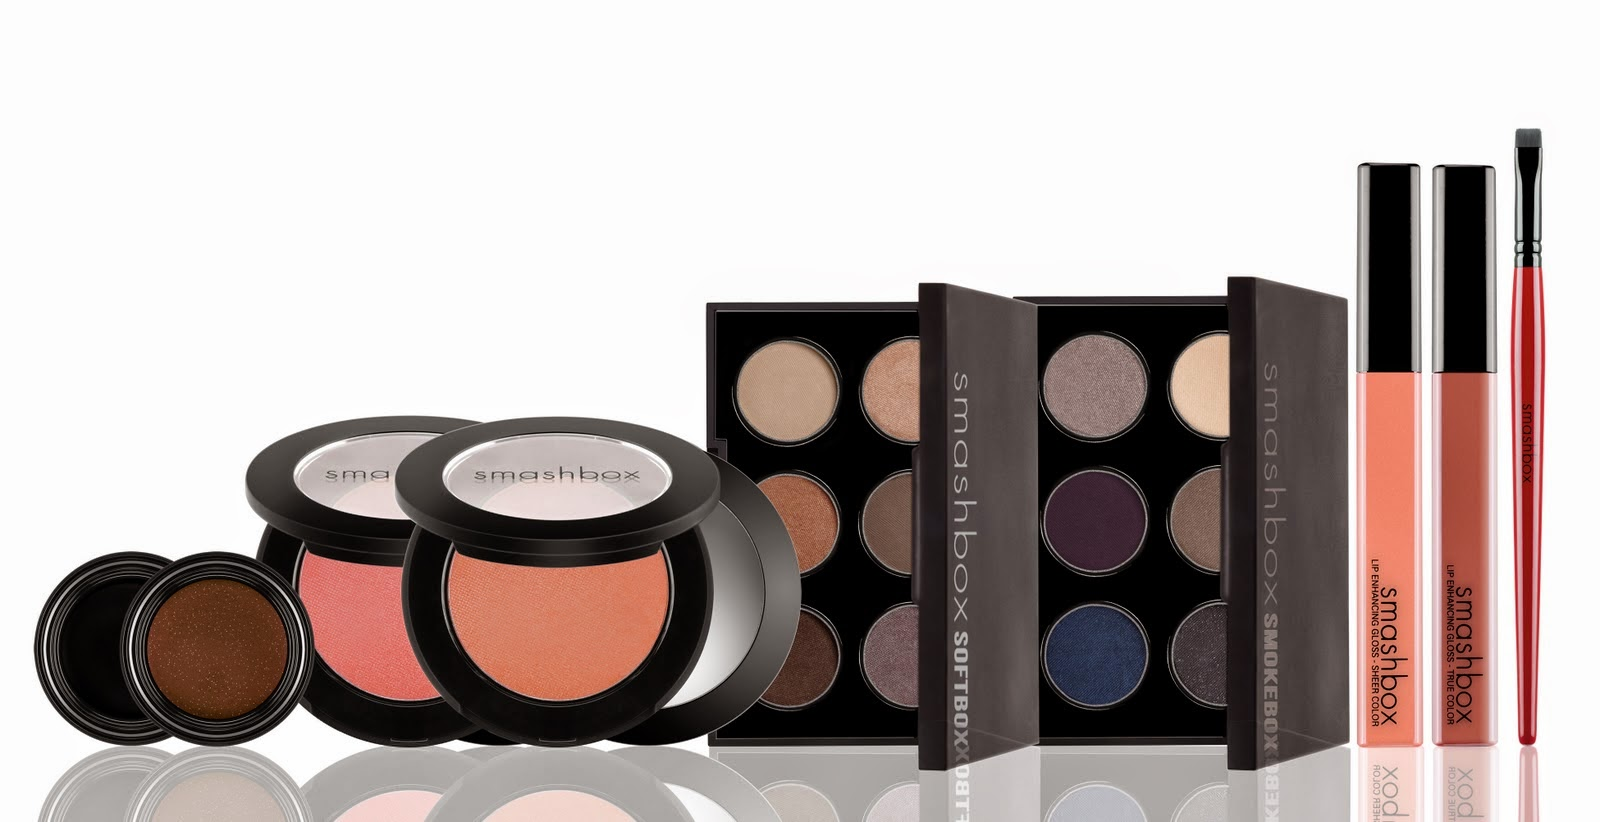 kit de cosméticos smashbox